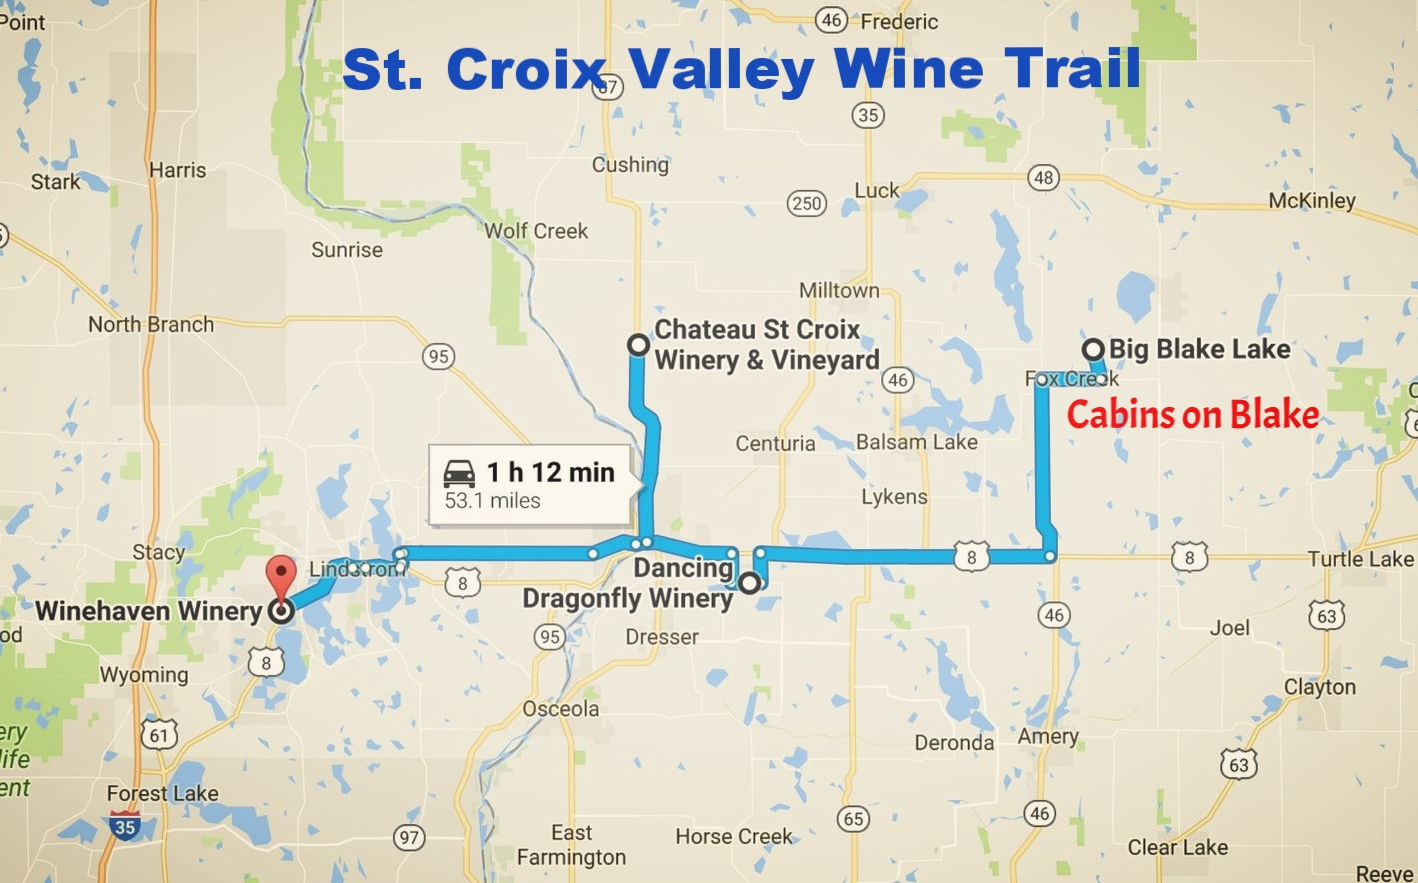 St Croix Valley Wine Trail